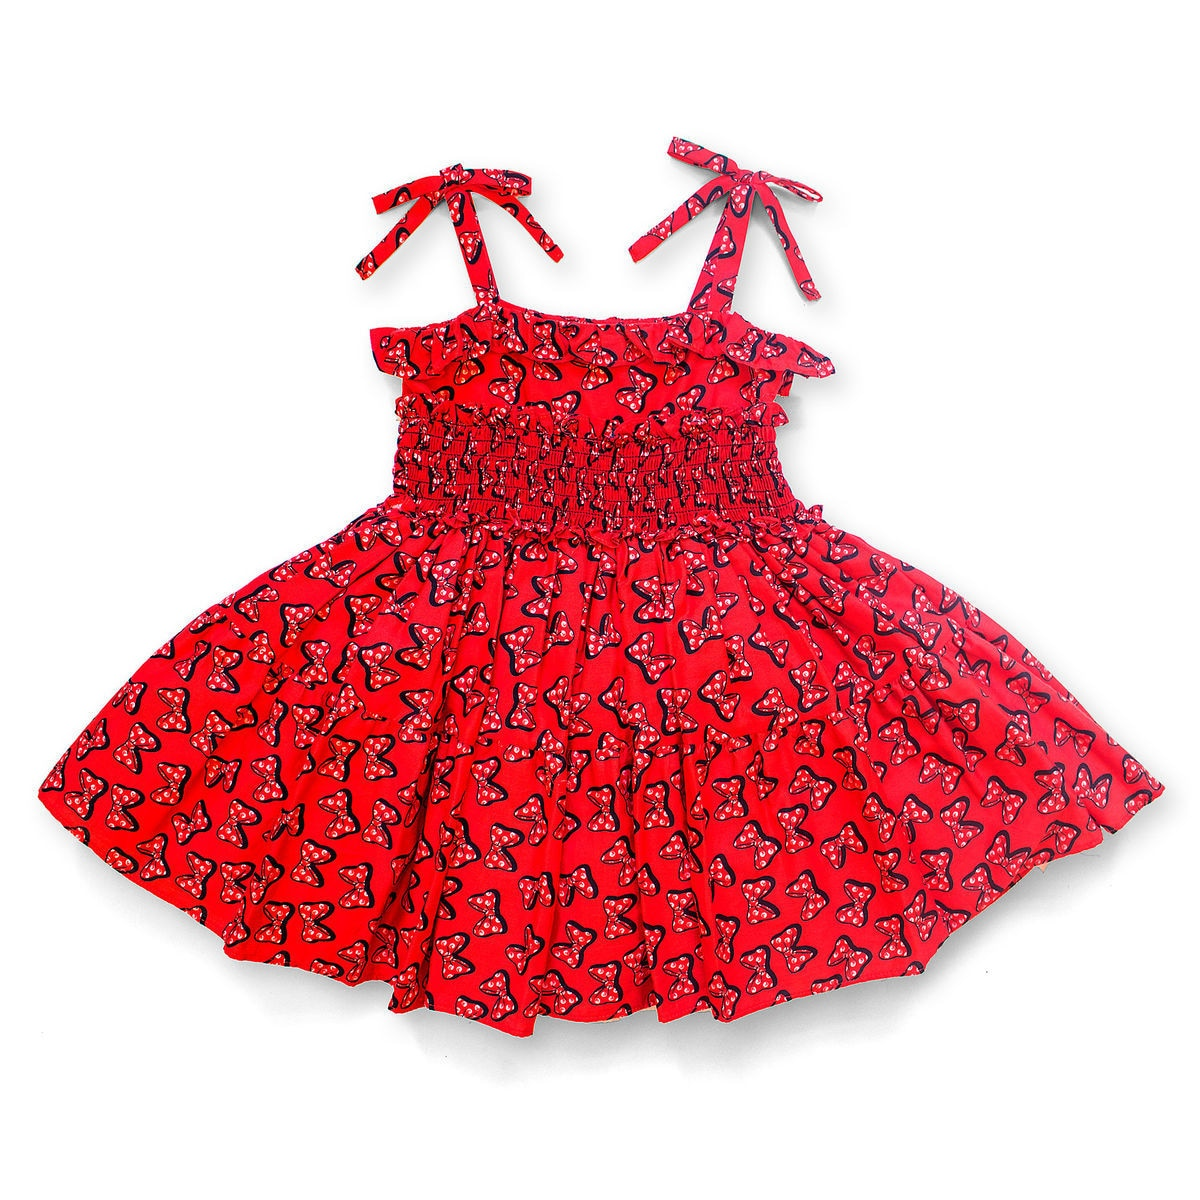 dab36cc54 Minnie Mouse Petti Dress - Tutu Couture - Girls